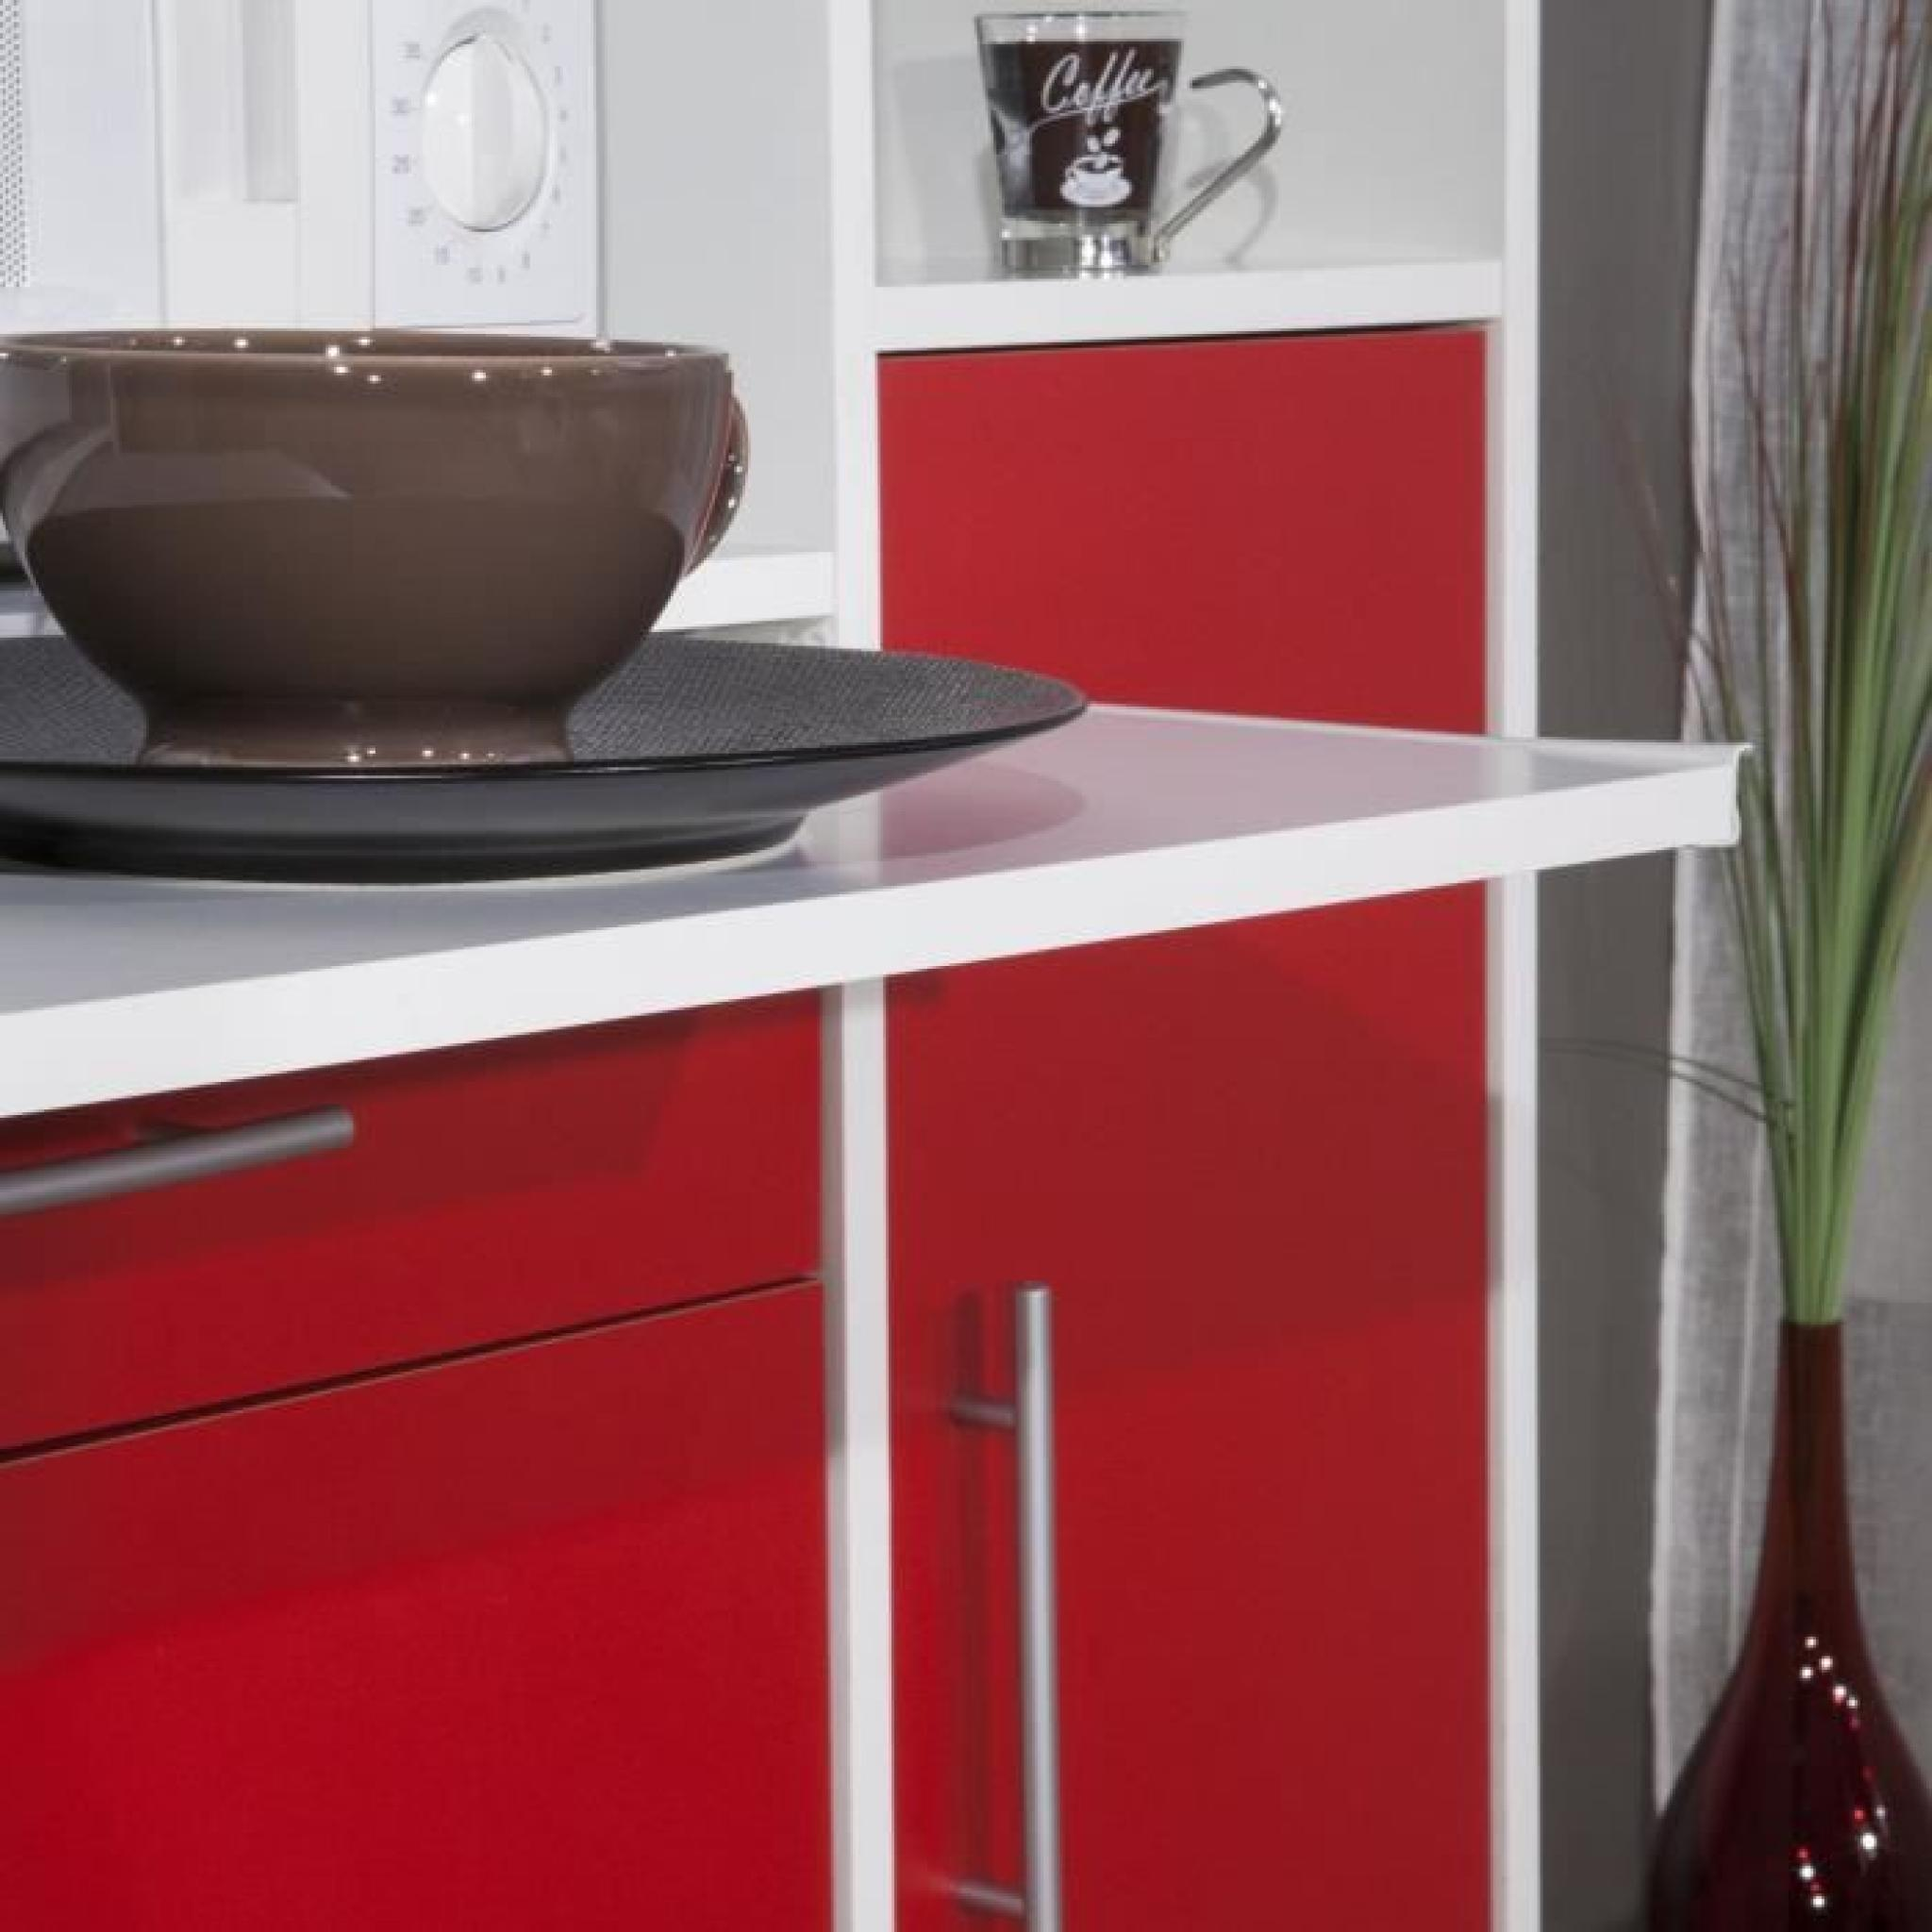 pepper buffet de cuisine 59cm rouge achat vente buffet. Black Bedroom Furniture Sets. Home Design Ideas